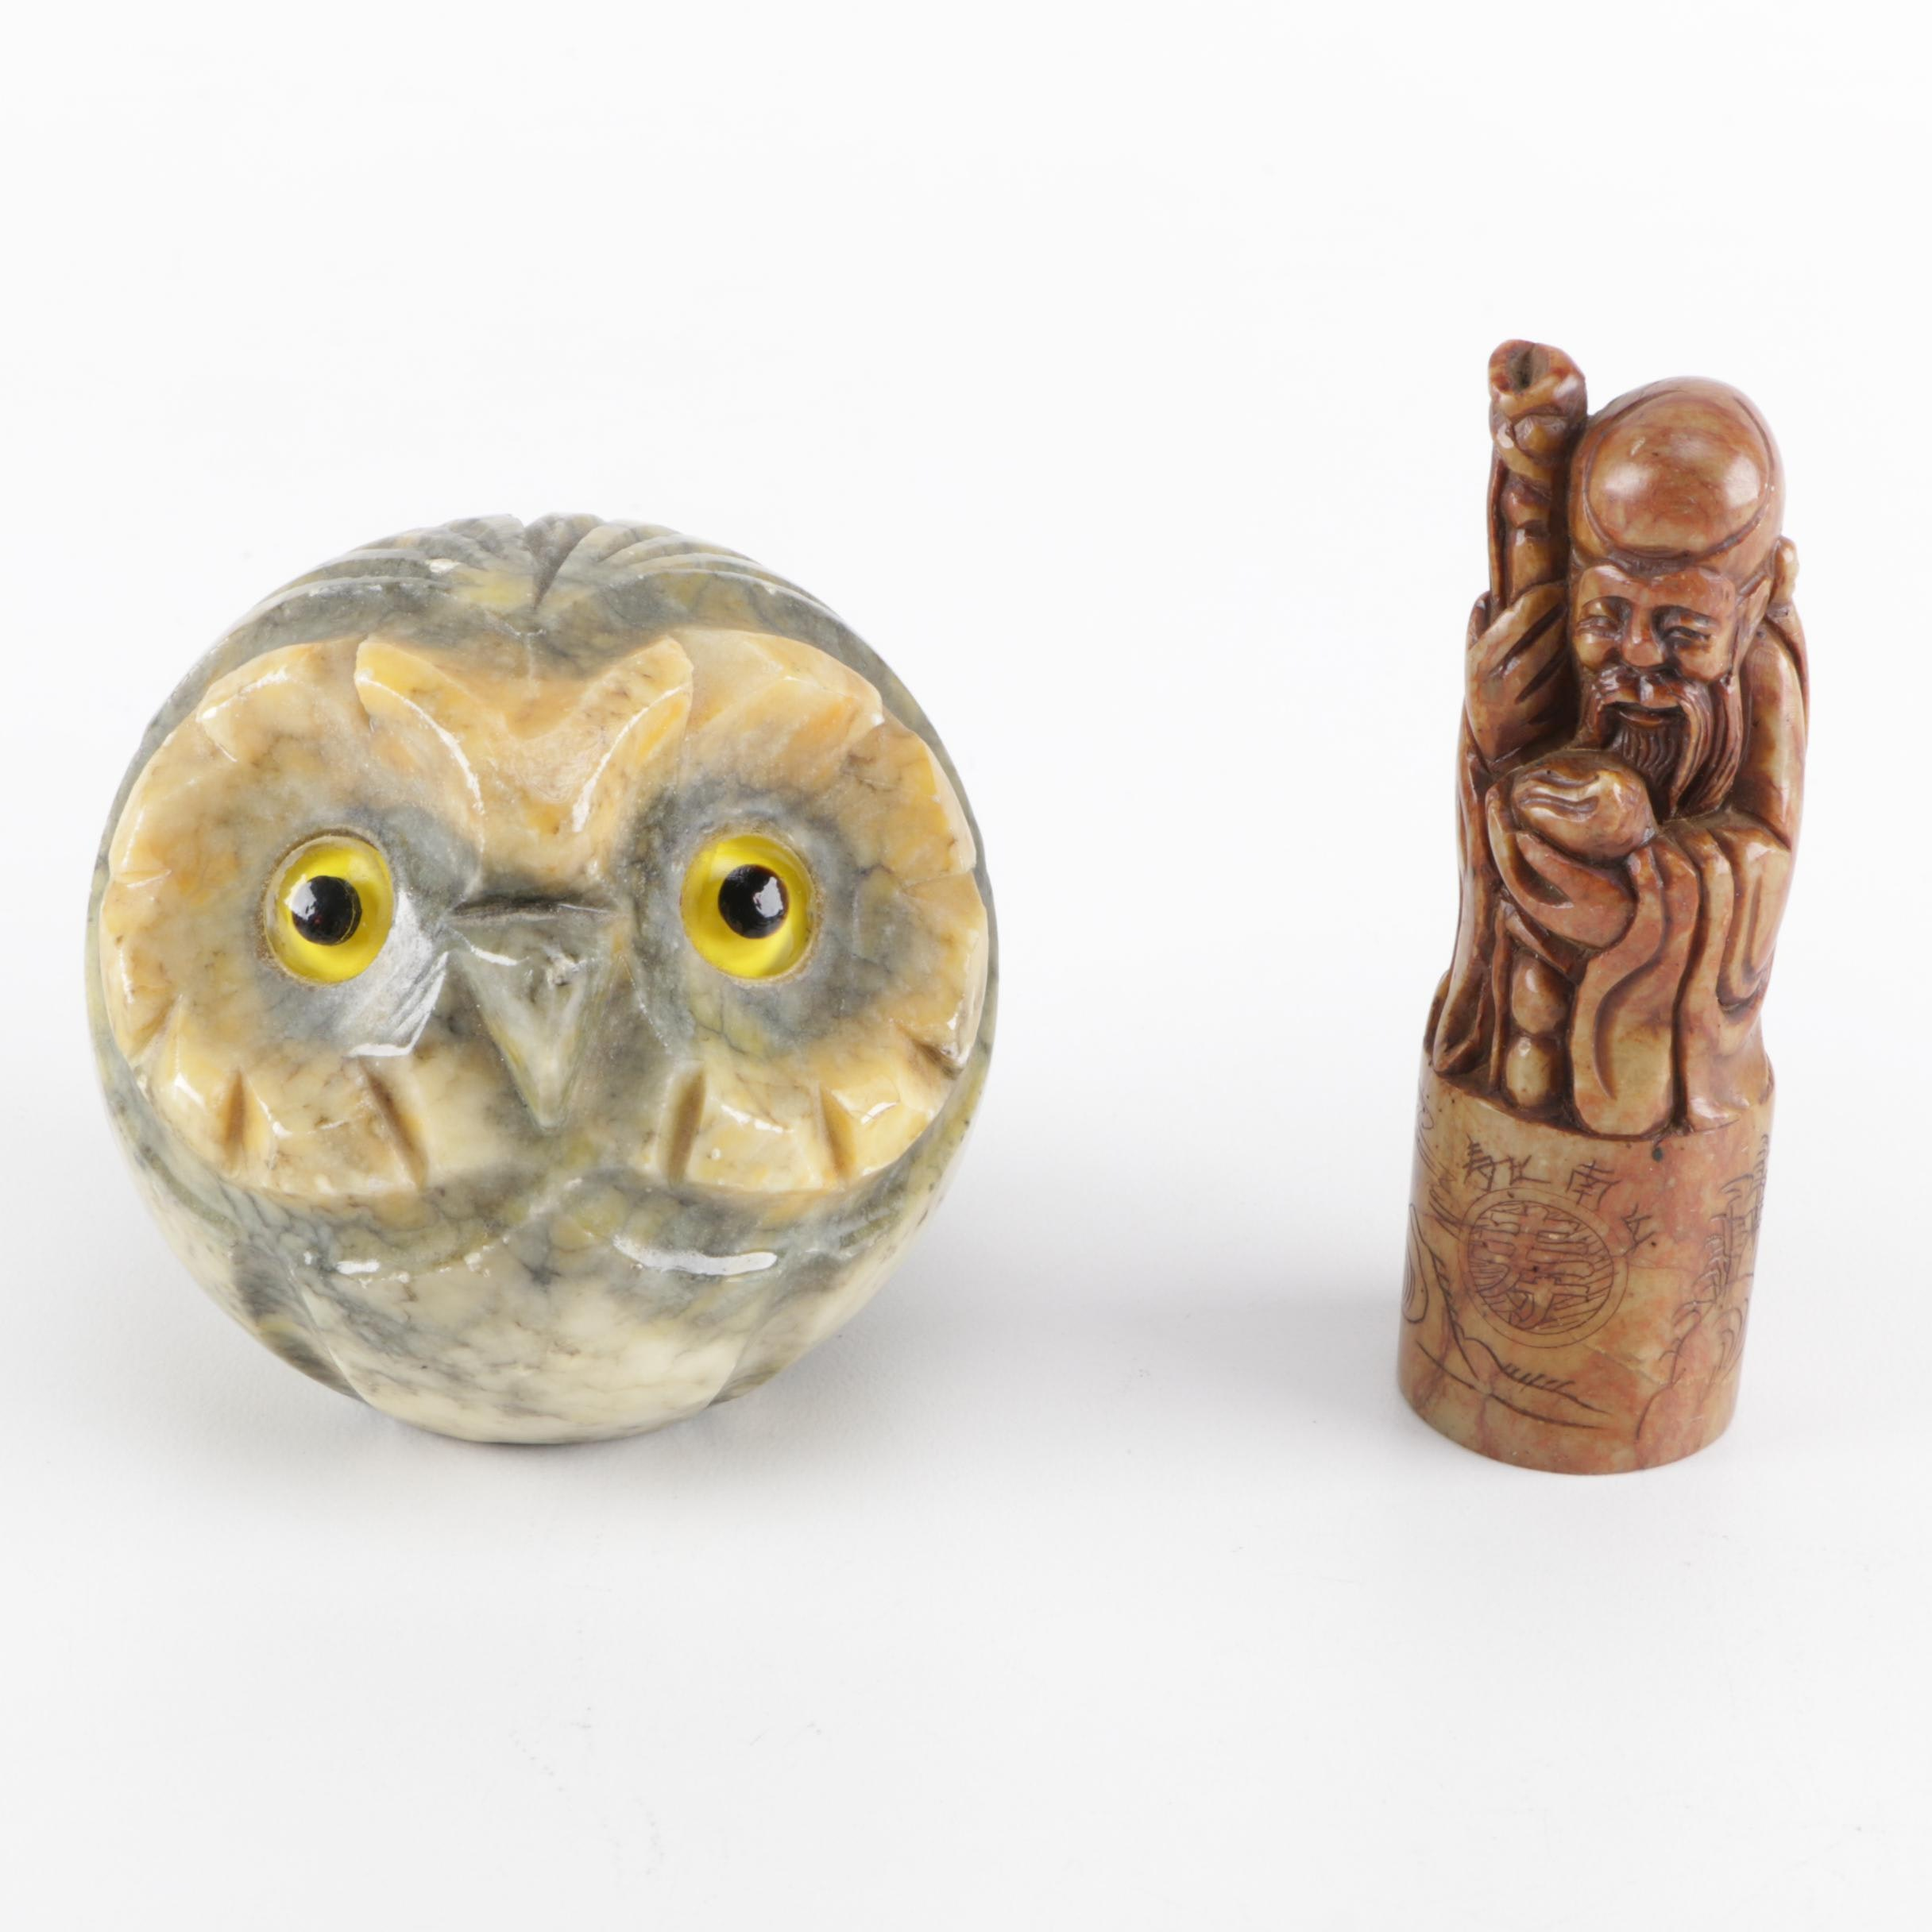 Alabaster Carved Owl and Shoulao Figurines